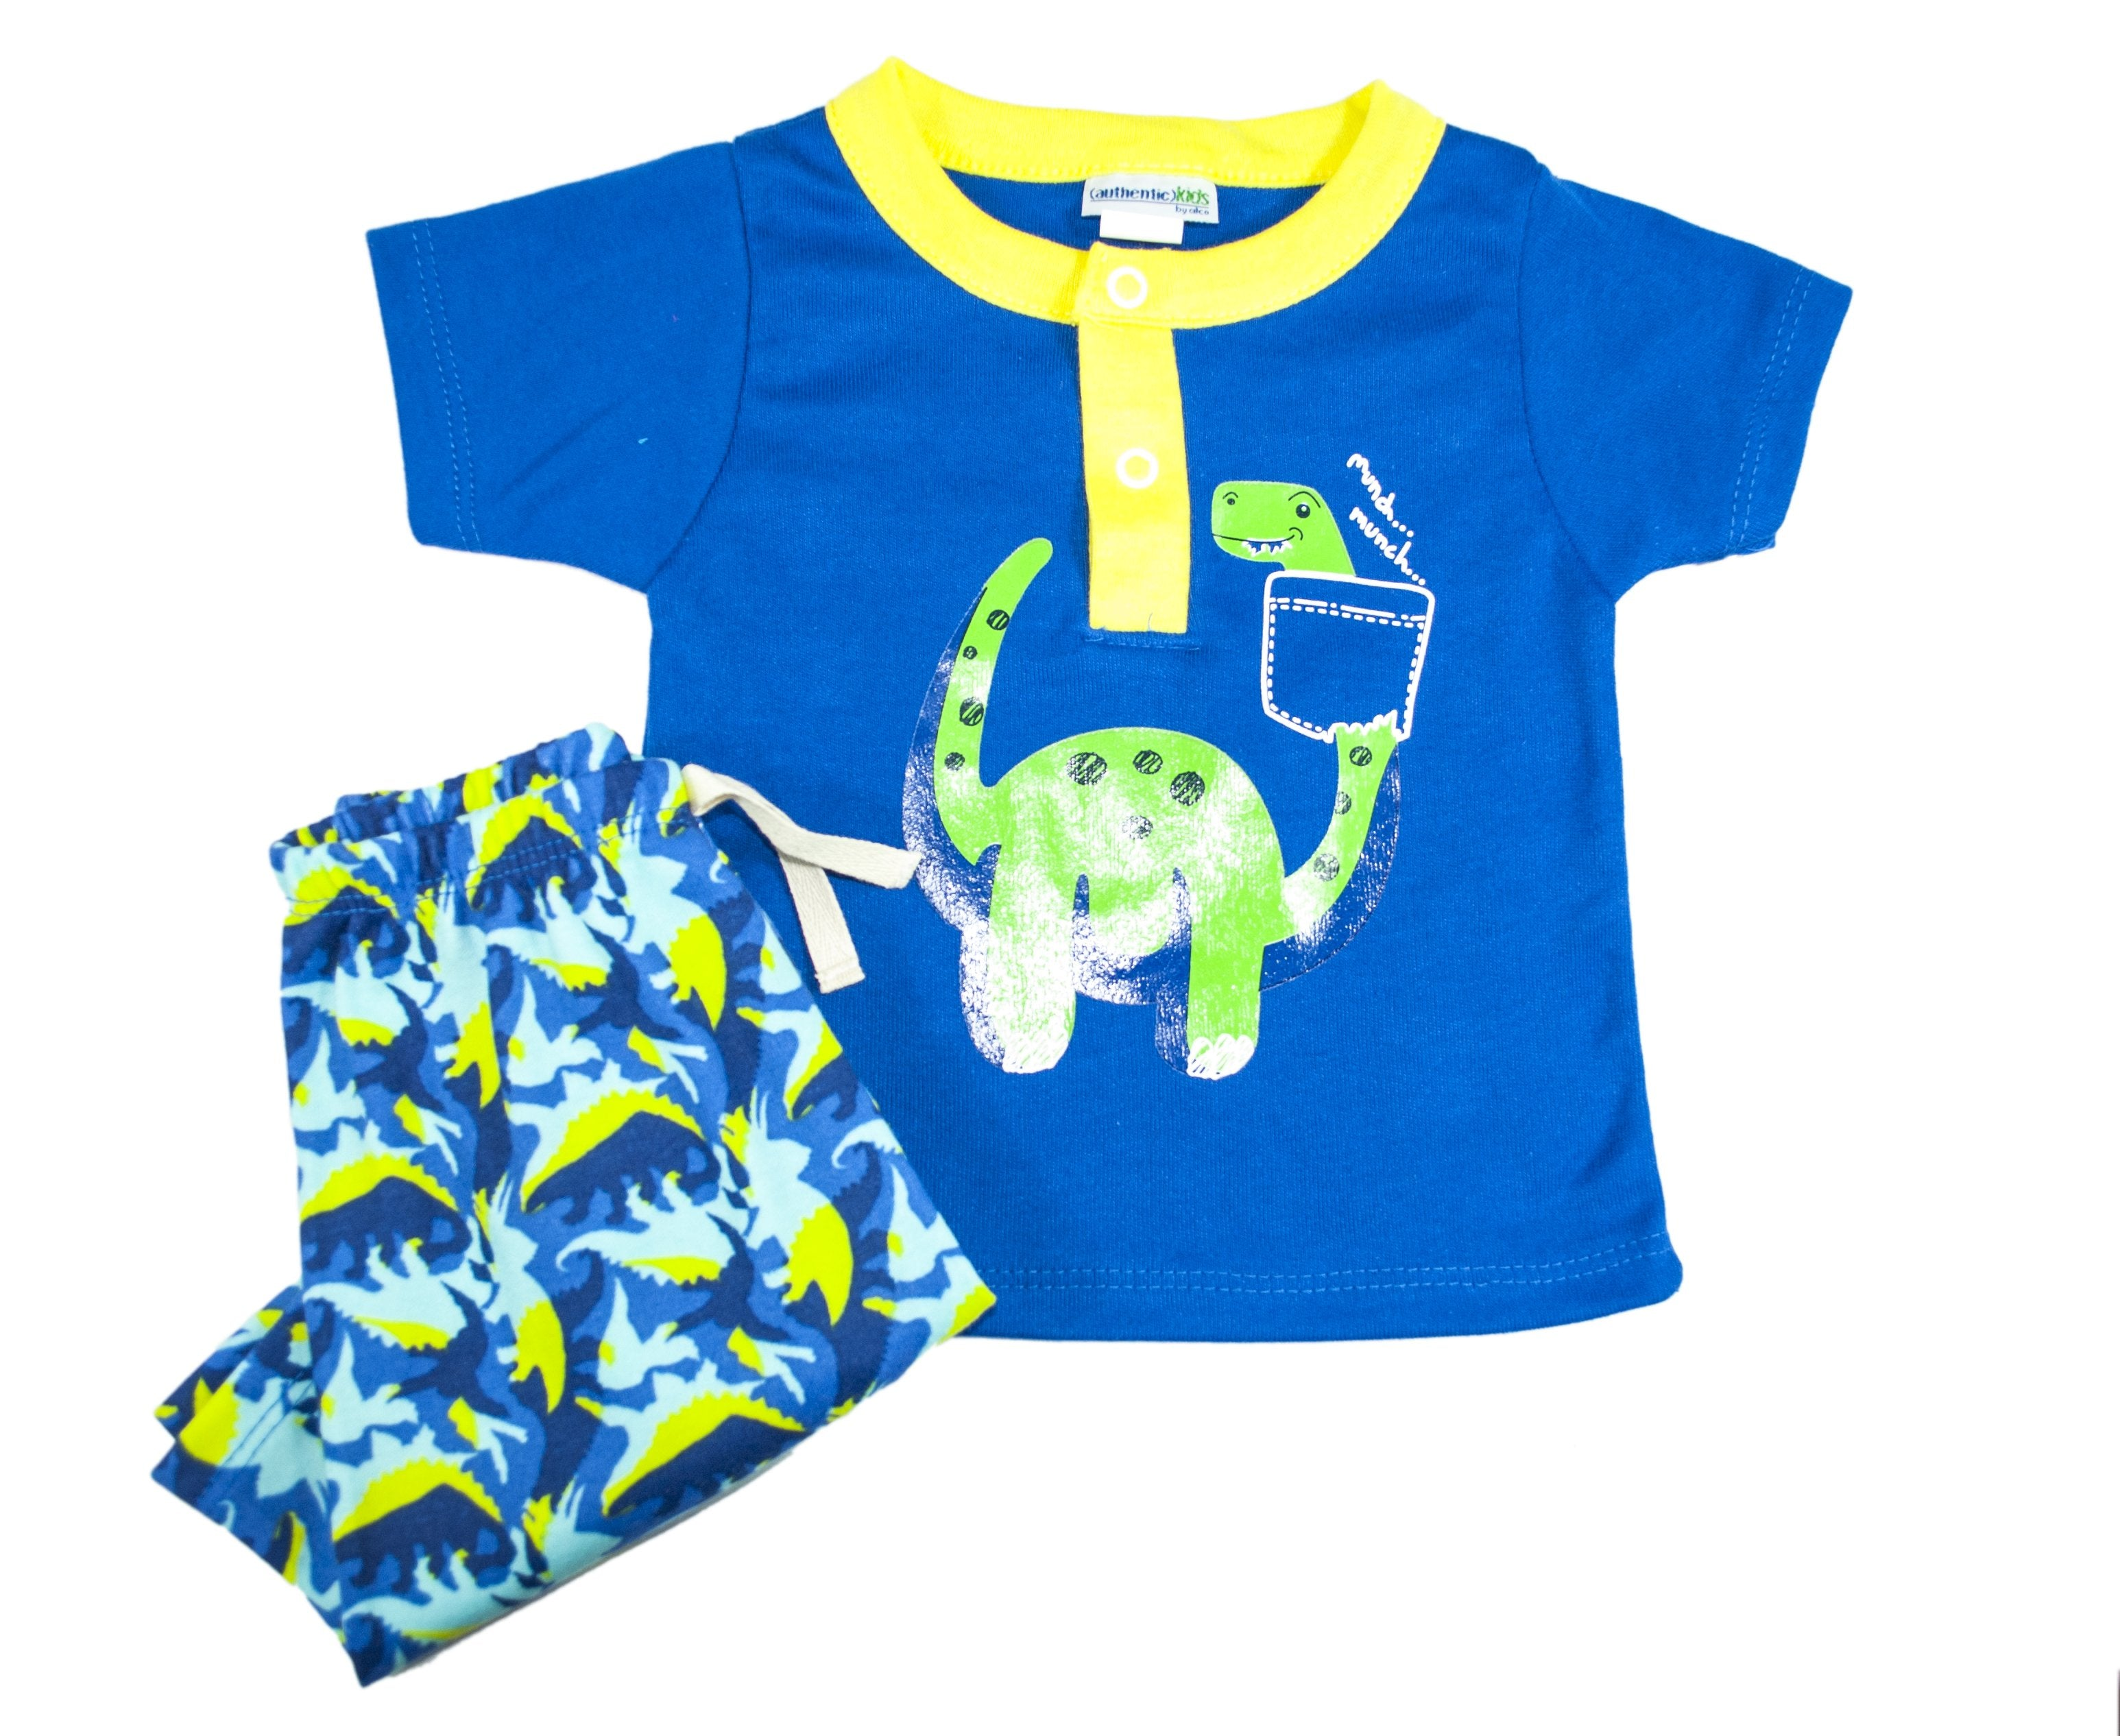 Set para Bebo de 2 pz Playera y Bermuda color Azul